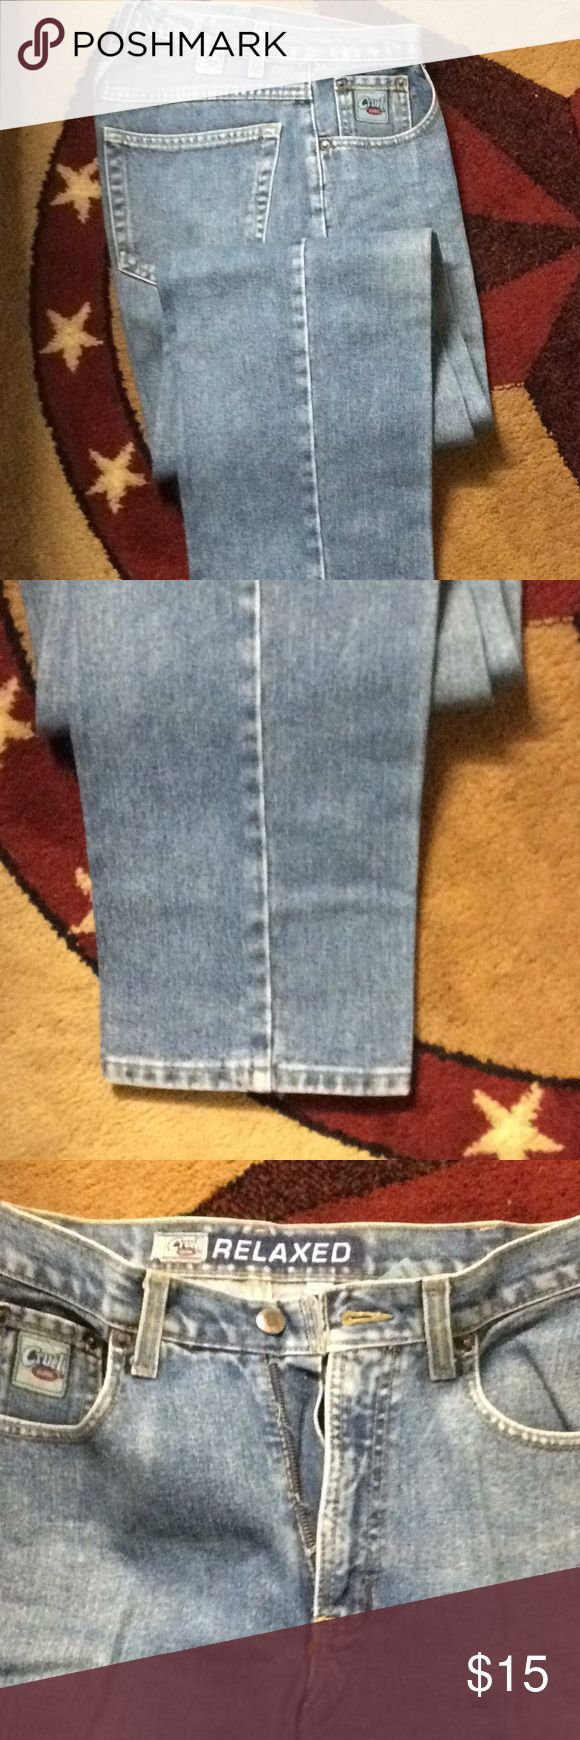 Cruel Girl Jeans Good condition , size 5, relaxed fit Cruel Girl Jeans